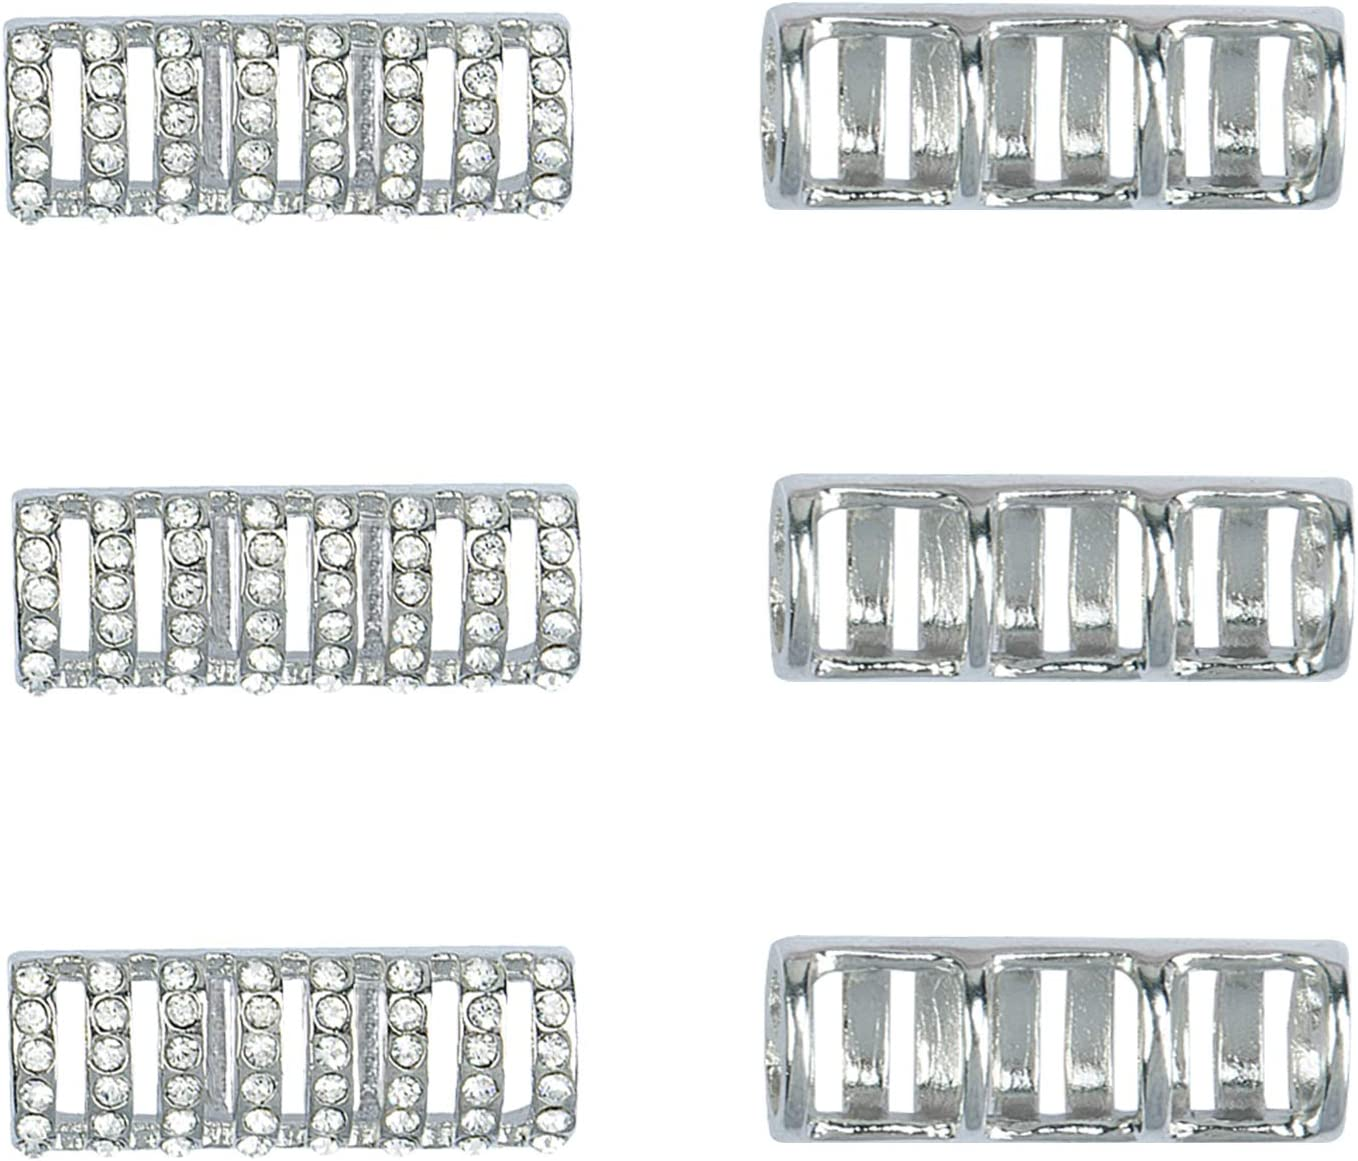 OMECKY Bead Connectors for Watch Diamond Making New life Silver free Band